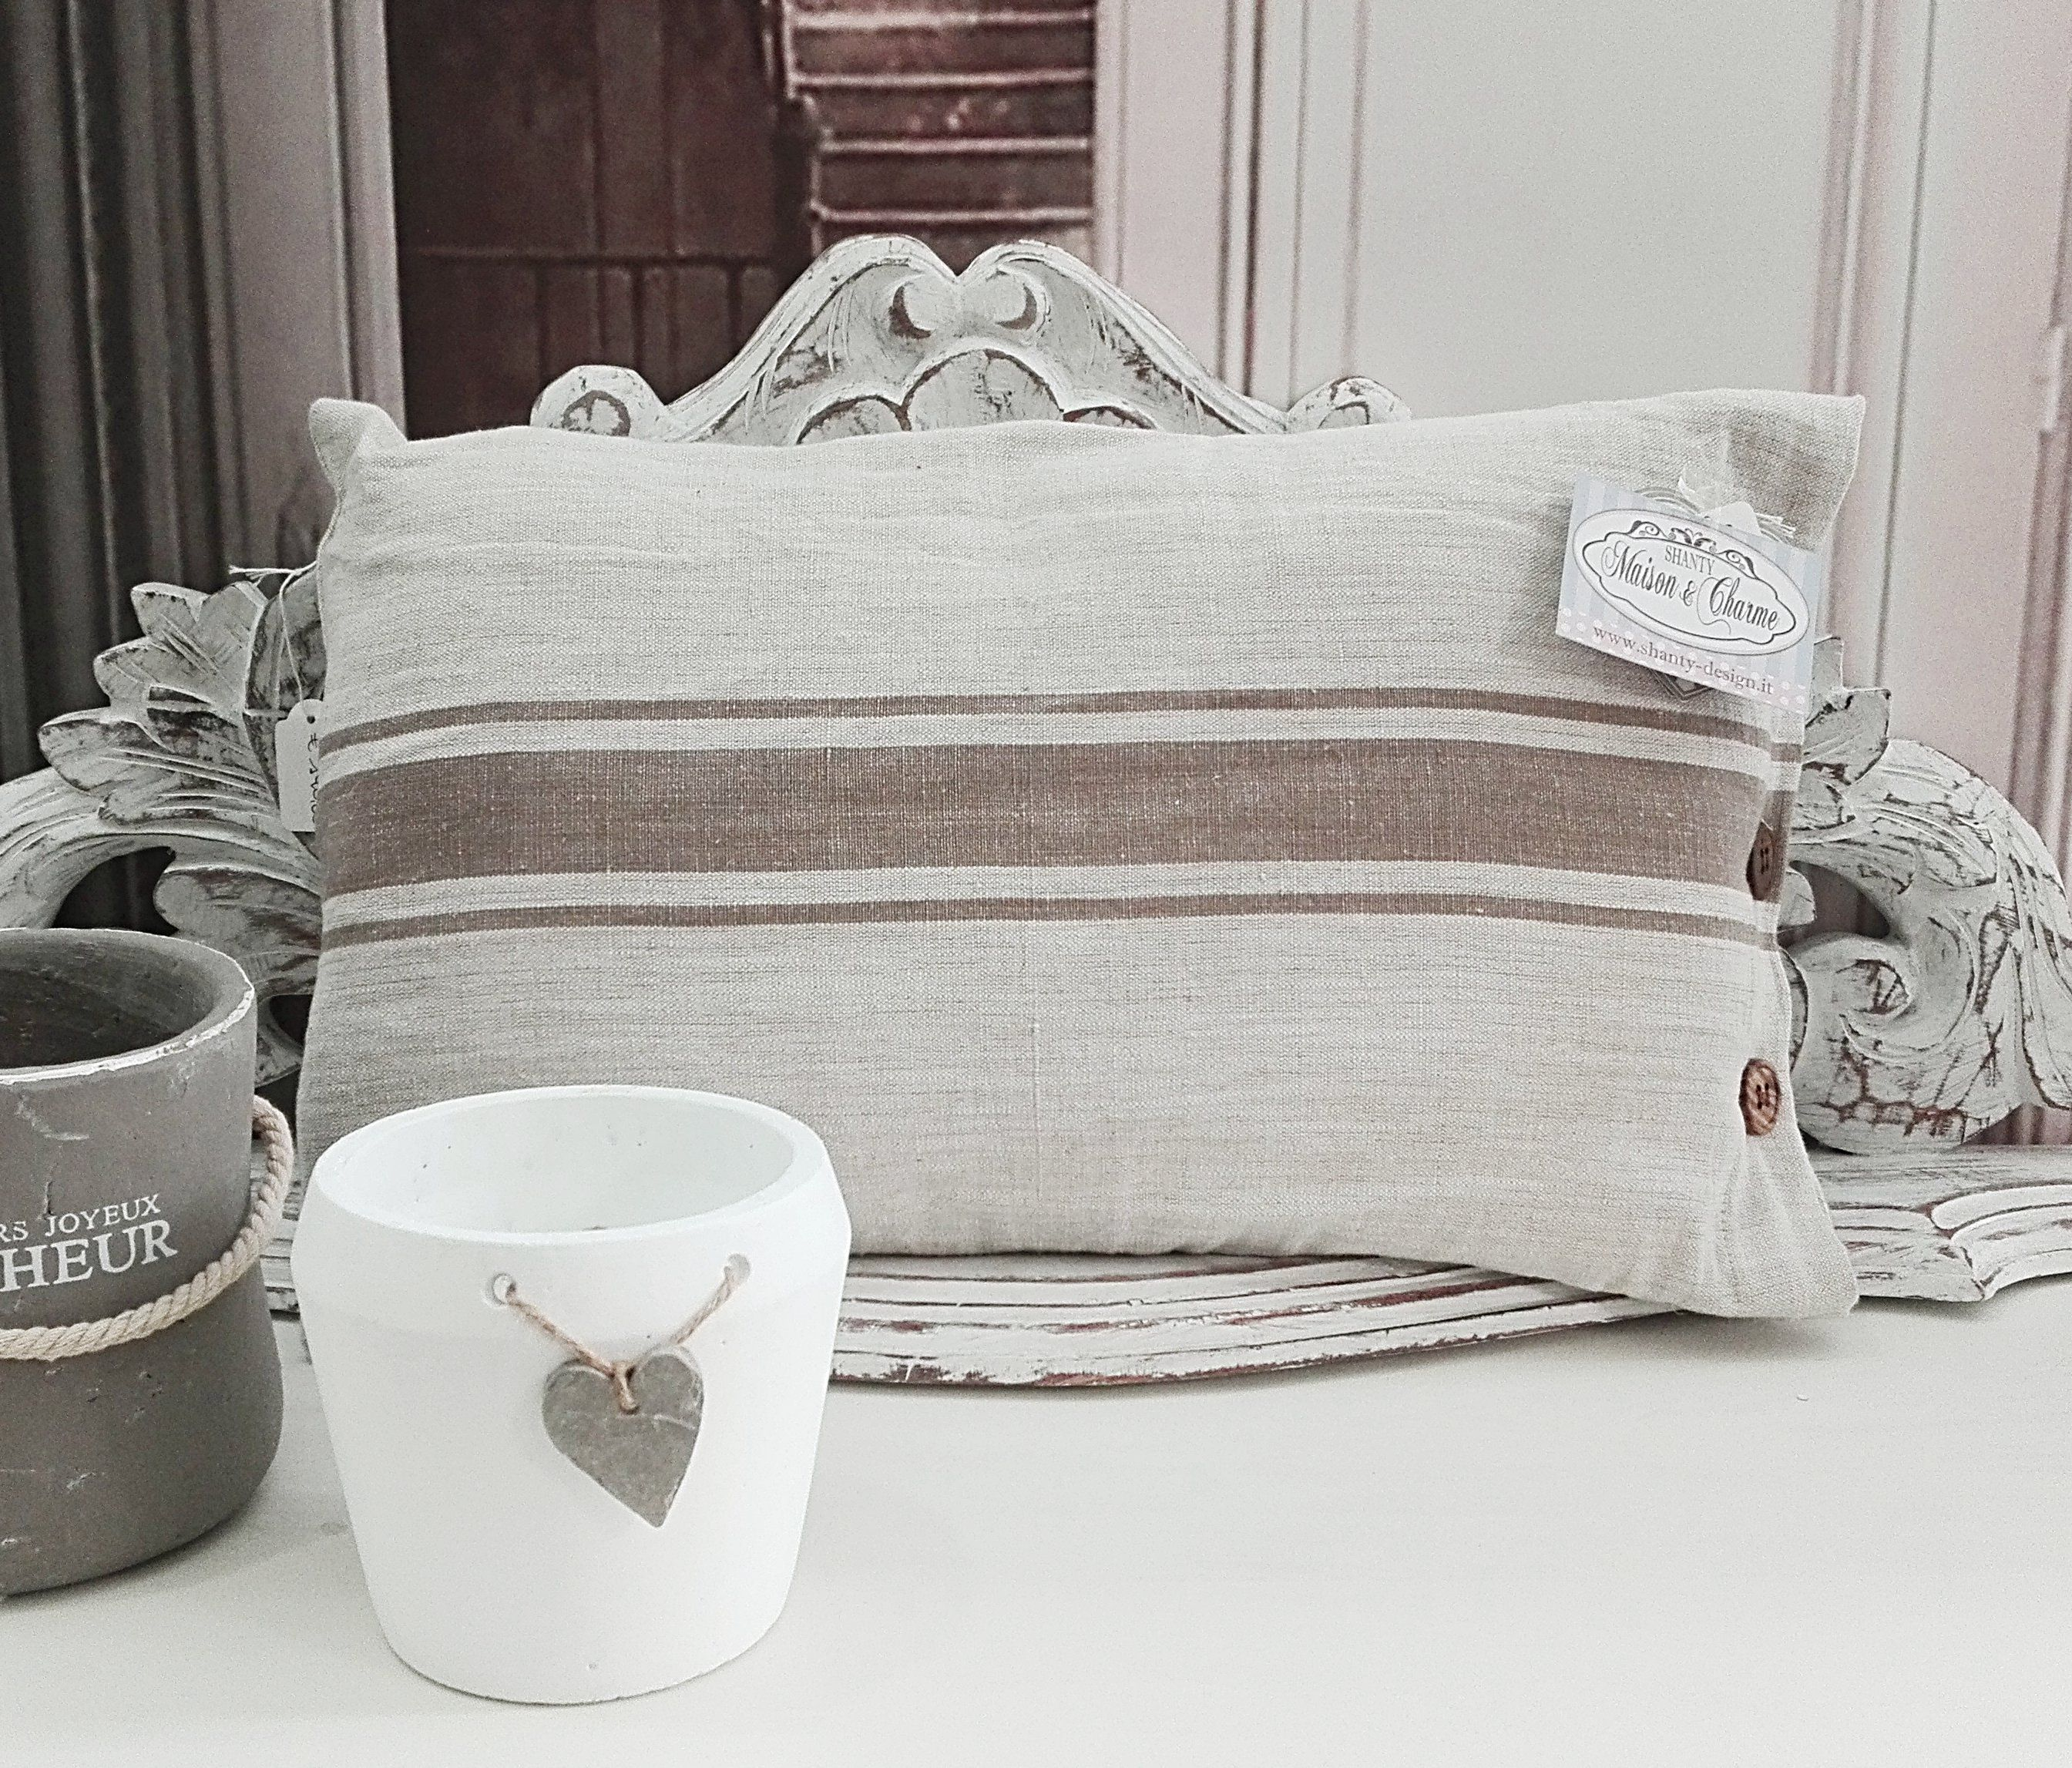 Tovaglie Provenzali, Runner e Cuscini Country in stile Shabby Chic